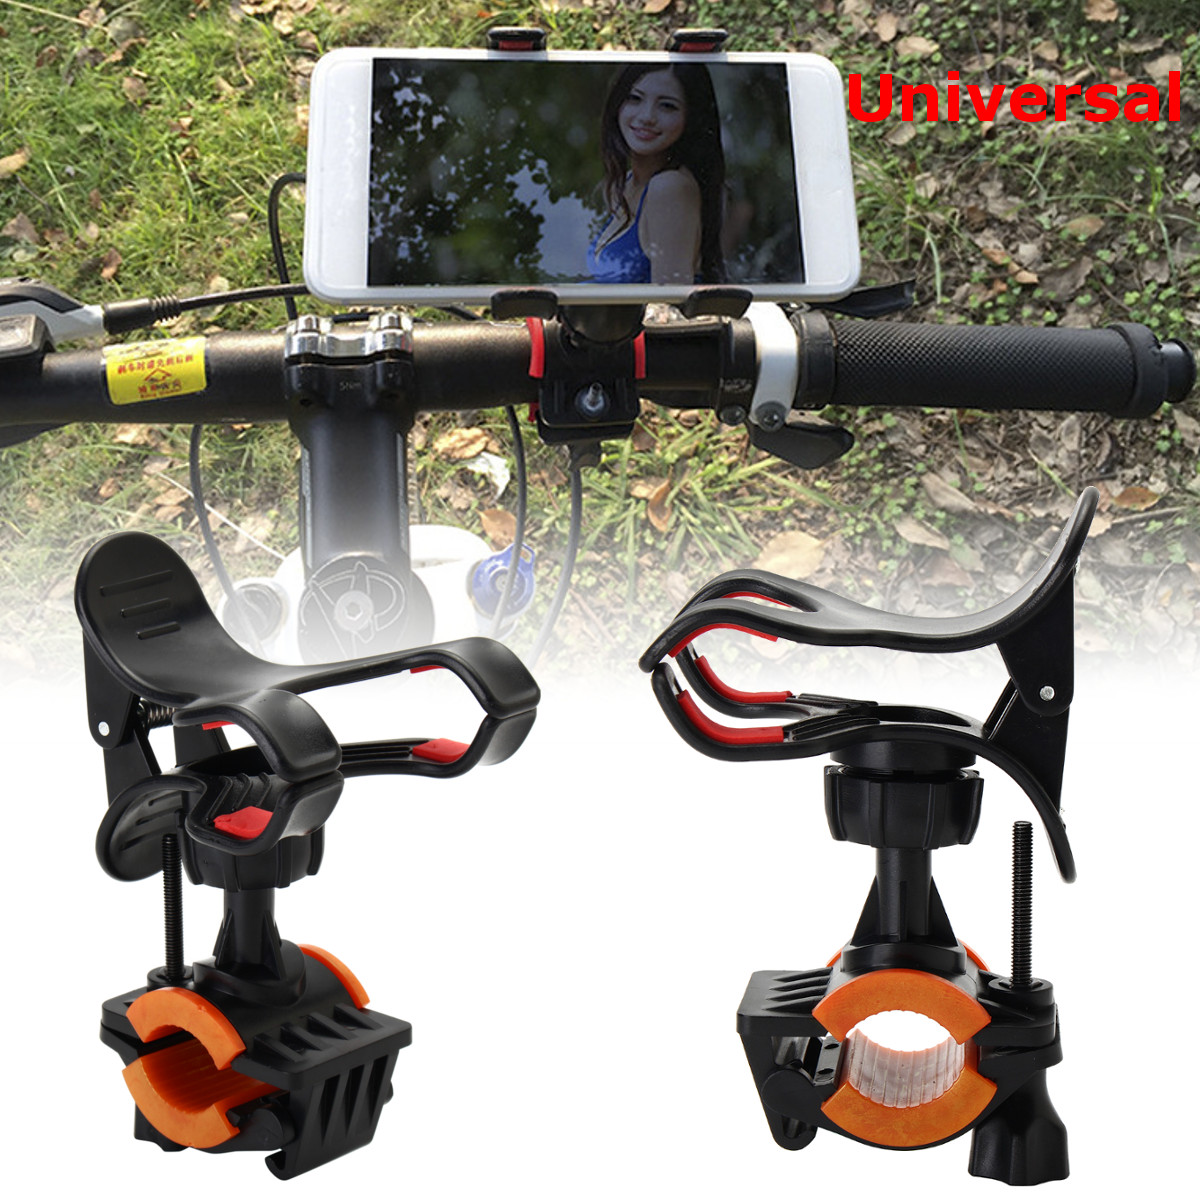 Dual Handheld Gimbal Stabilizer Extended Handle Grip